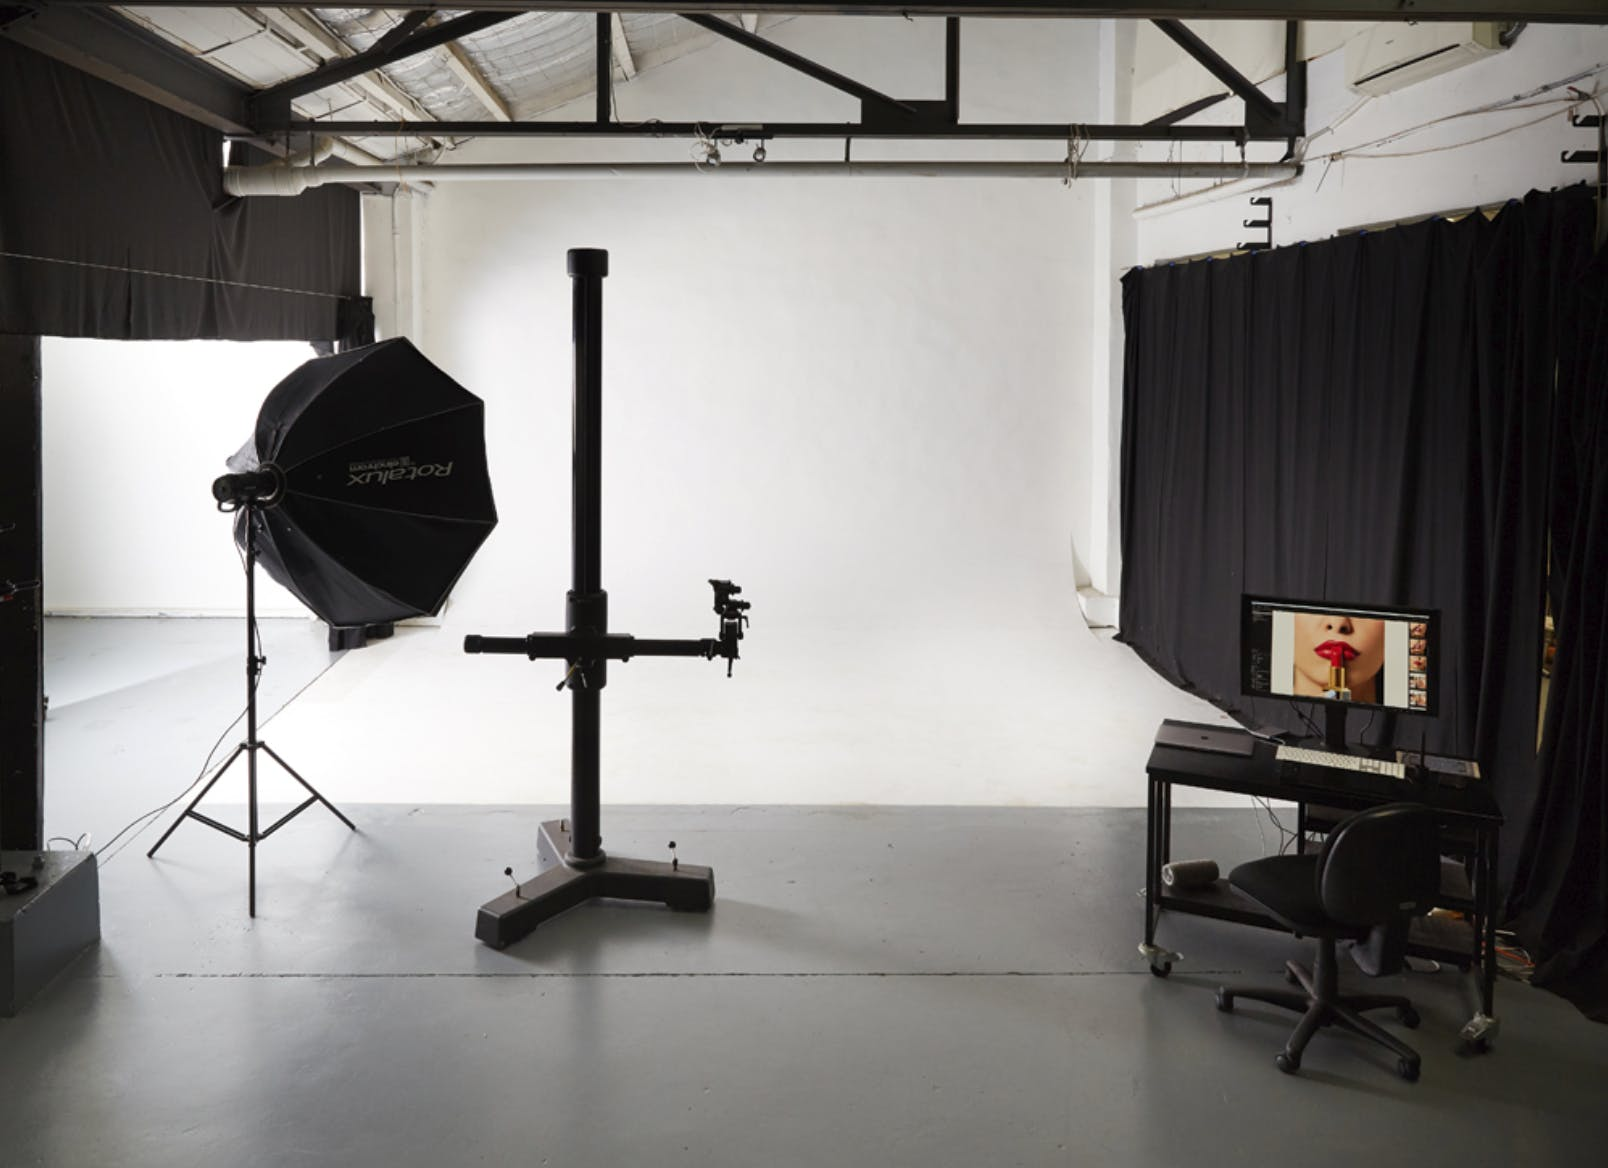 Cyclorama, creative studio at Studio 80, image 1